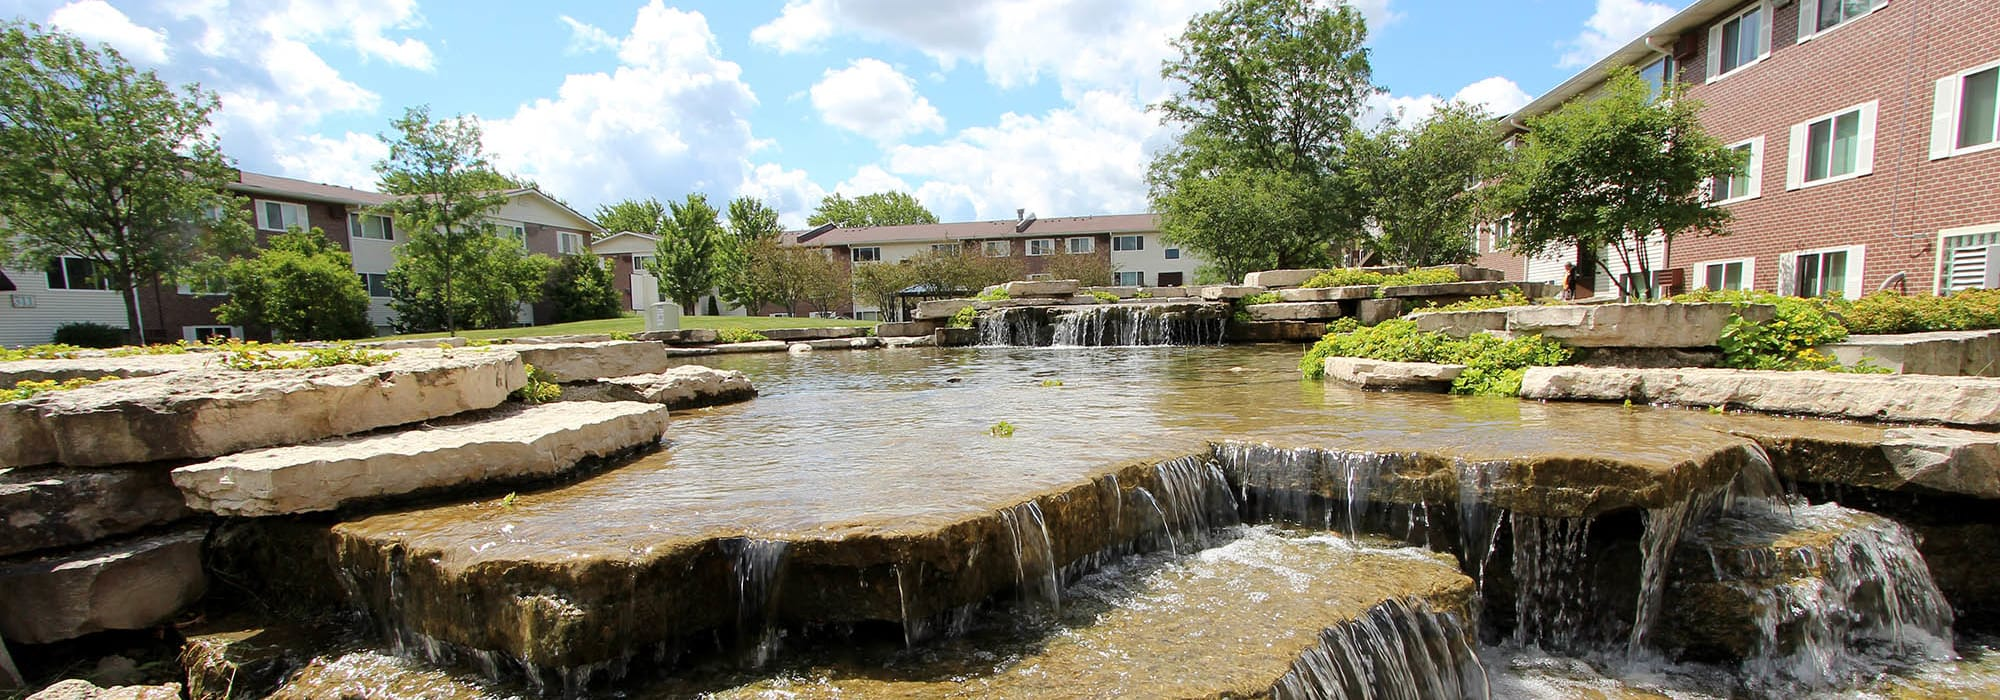 Accessibility statement at Riverstone Apartments in Bolingbrook, Illinois